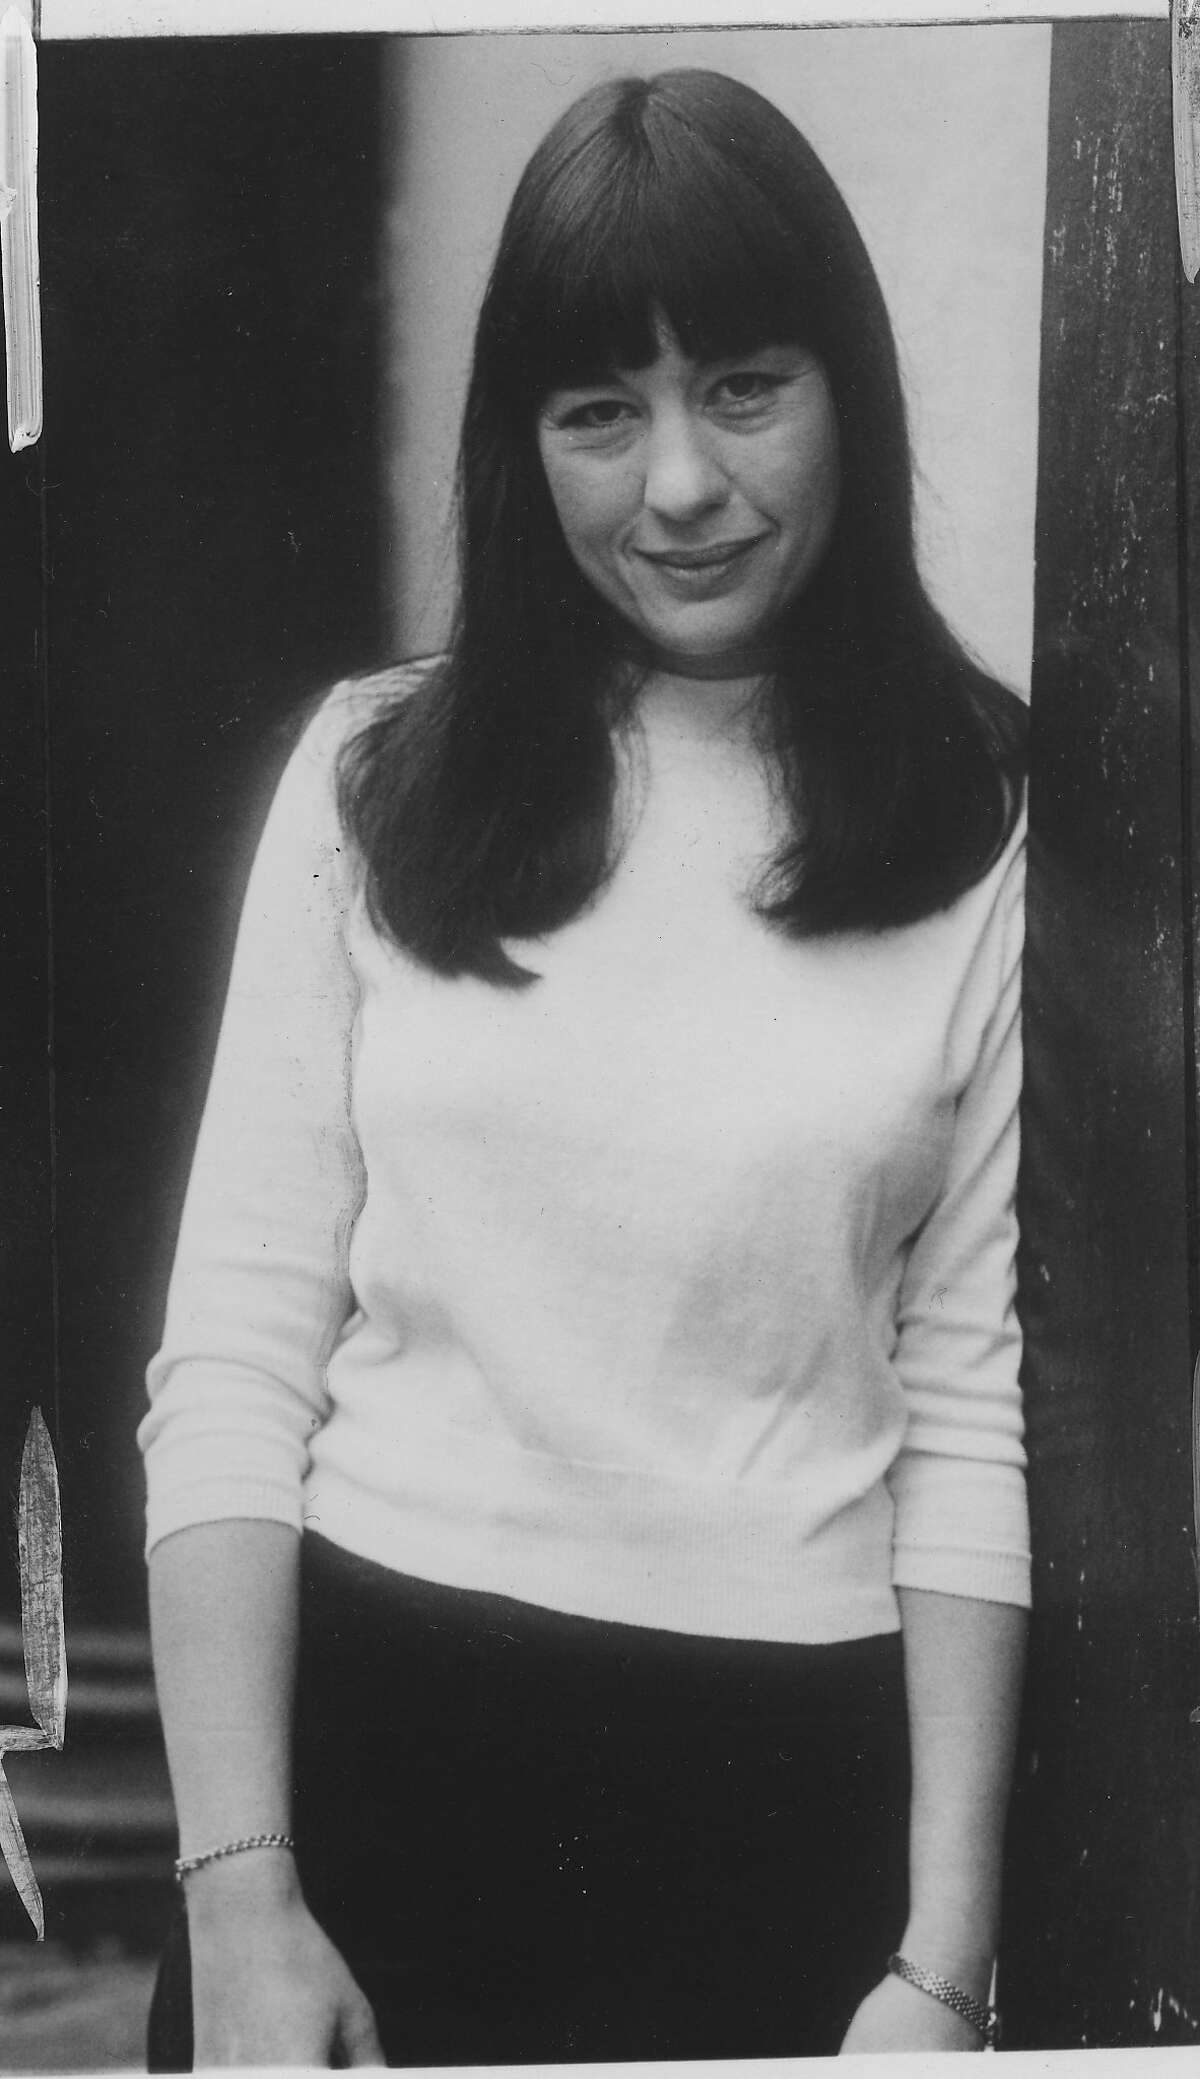 Susan Berman, Author of Easy Street: The True Story of a Mob Family Photo ran 10/02/1981, P. 45